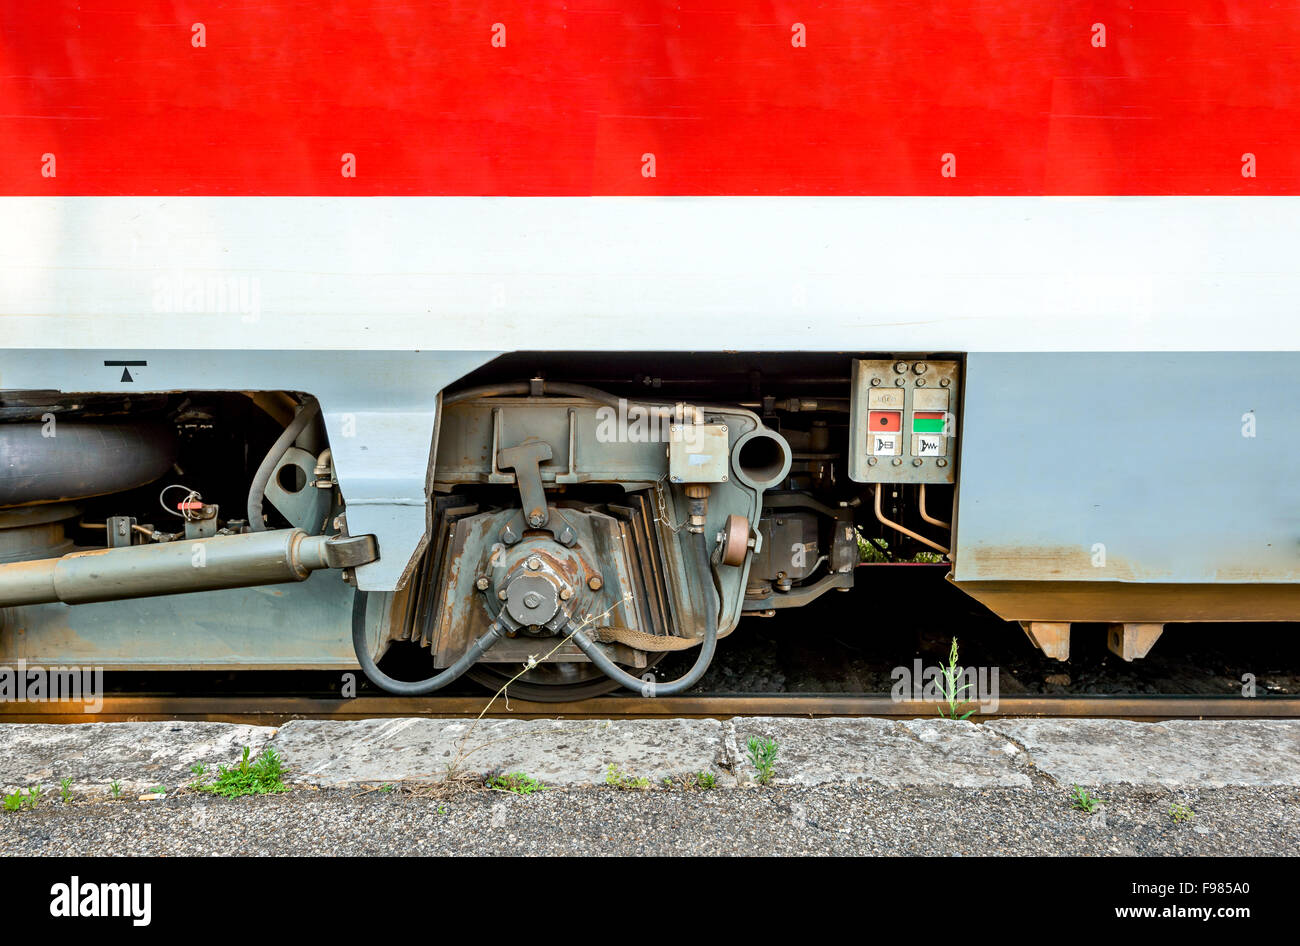 Modern train detail. Wheel axle from the wagon. - Stock Image